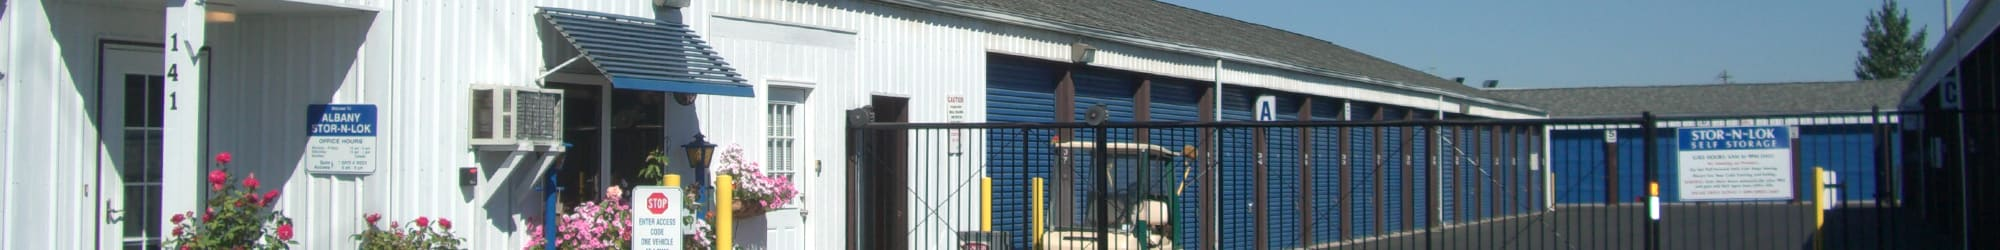 Reviews of self storage in Albany, OR